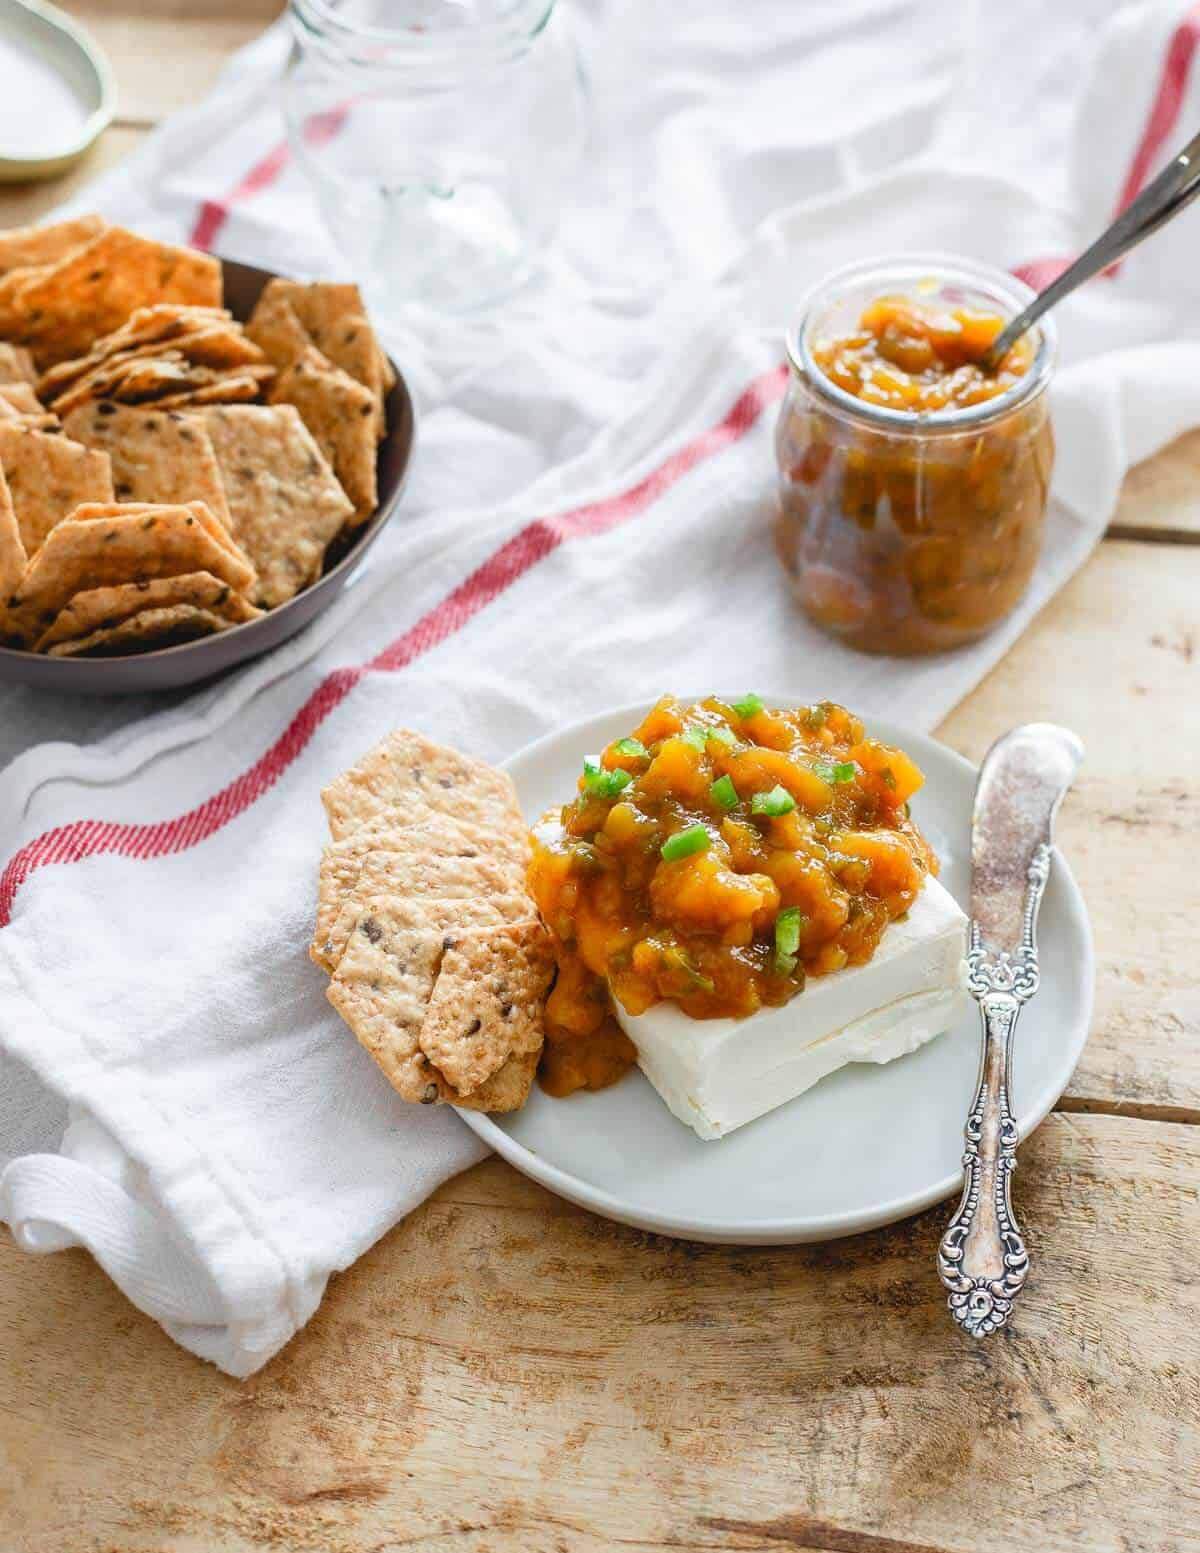 This jalapeno mango jam is the perfect balance of sweet and spice. It's equally delicious with some soft cheese and crackers as it is swirled in some yogurt!